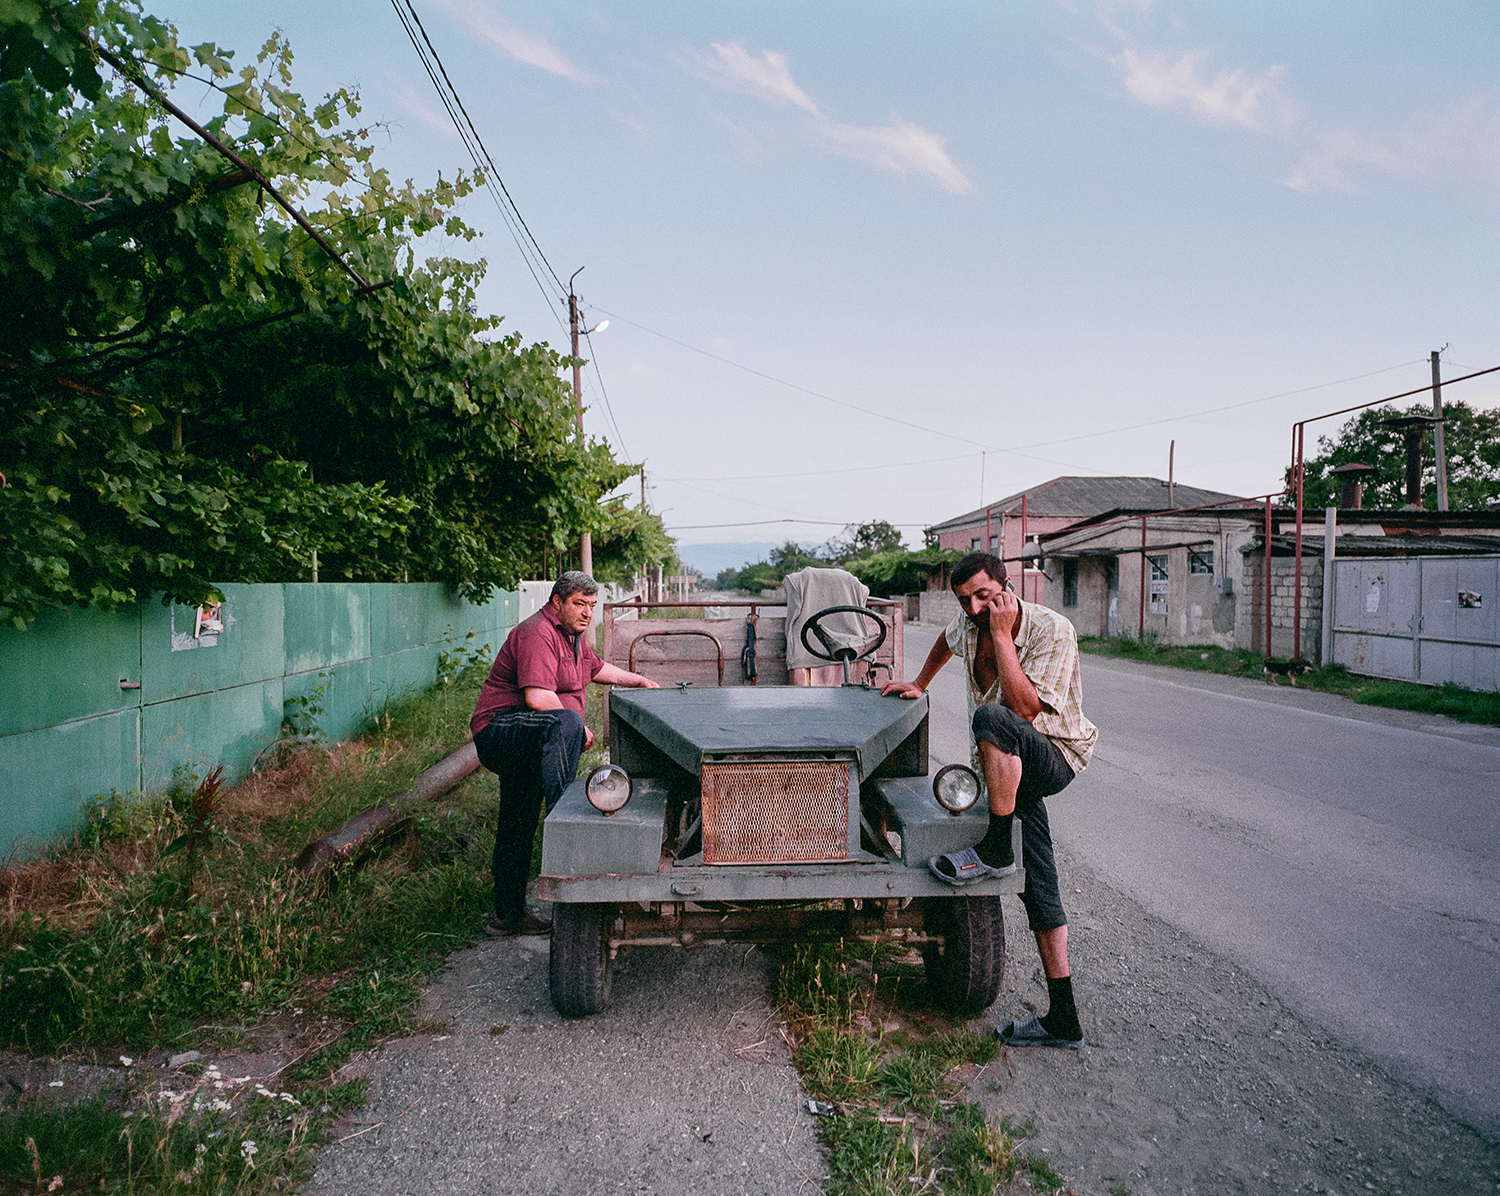 Steffen Junghanß - The Invisible Border men ride their old soviet jeep